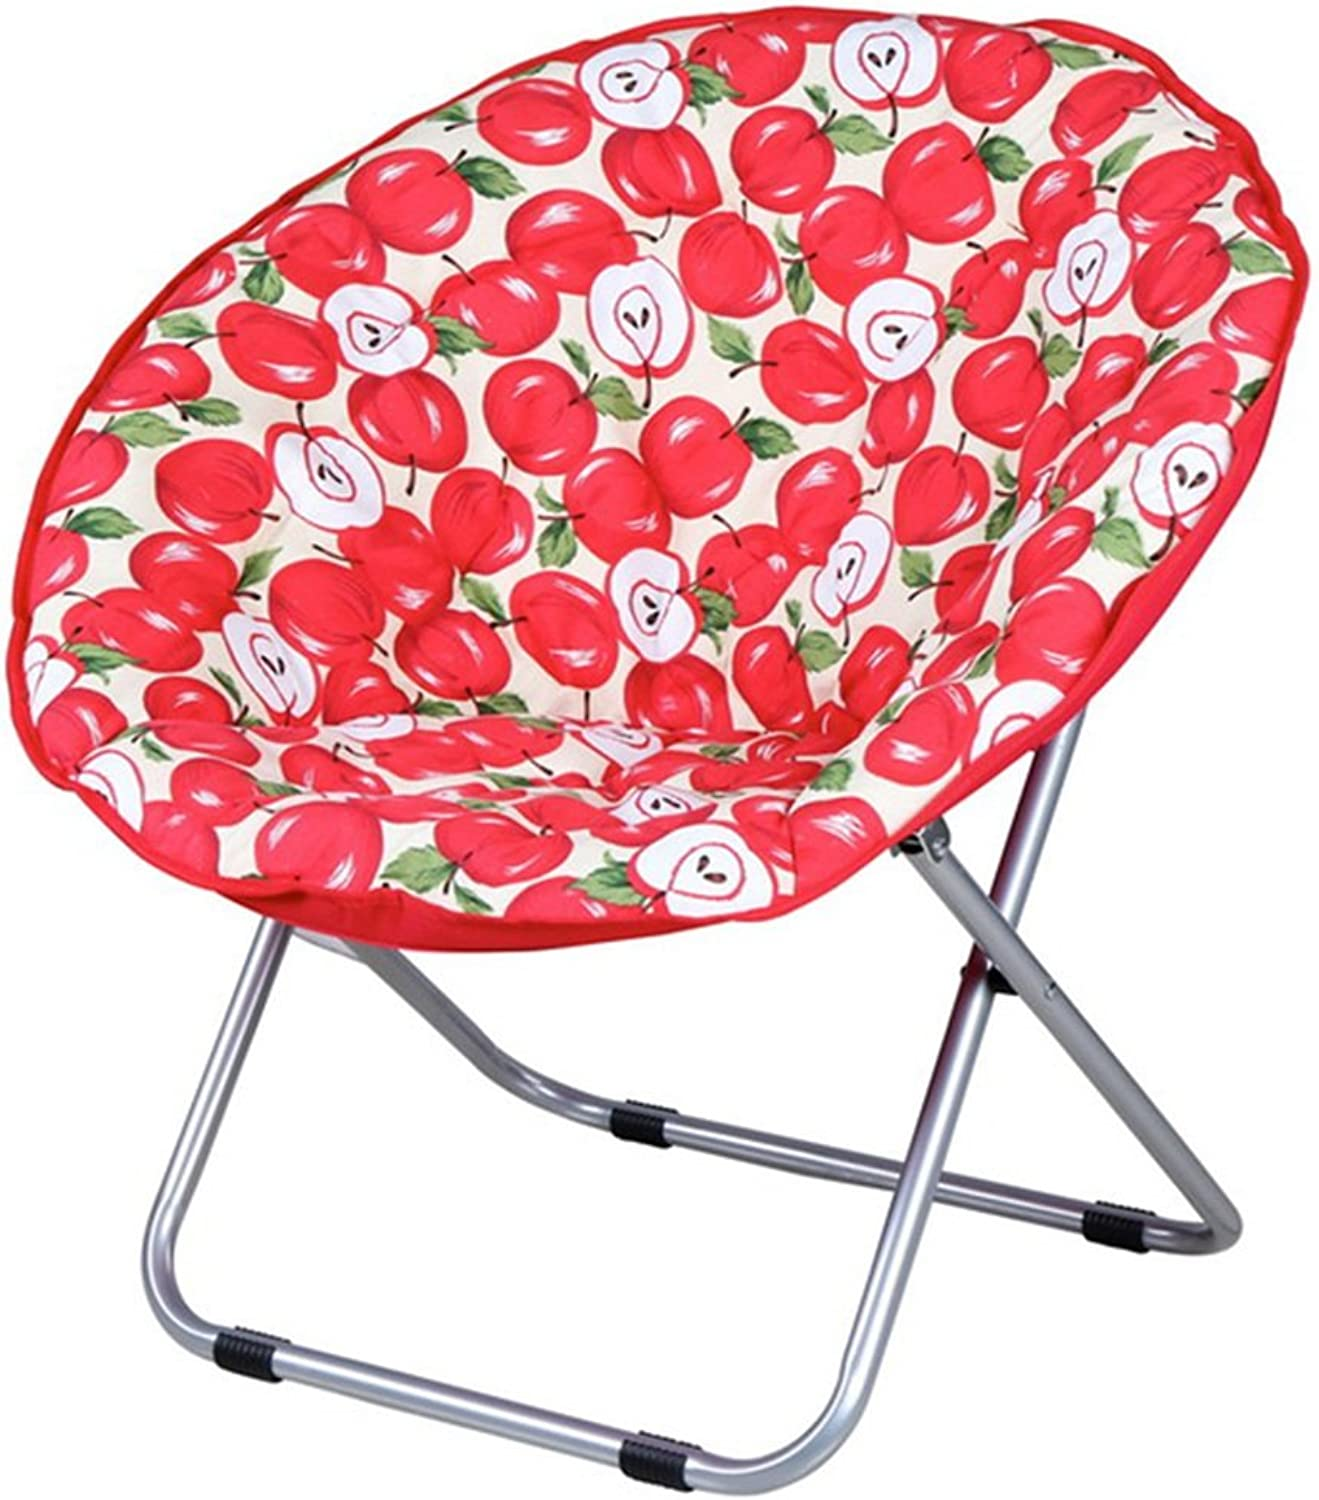 Red Foldable Padded Floor Chair Simple Casual Lazy Lounge Sofa Moon Chair (Size   Not Washable)